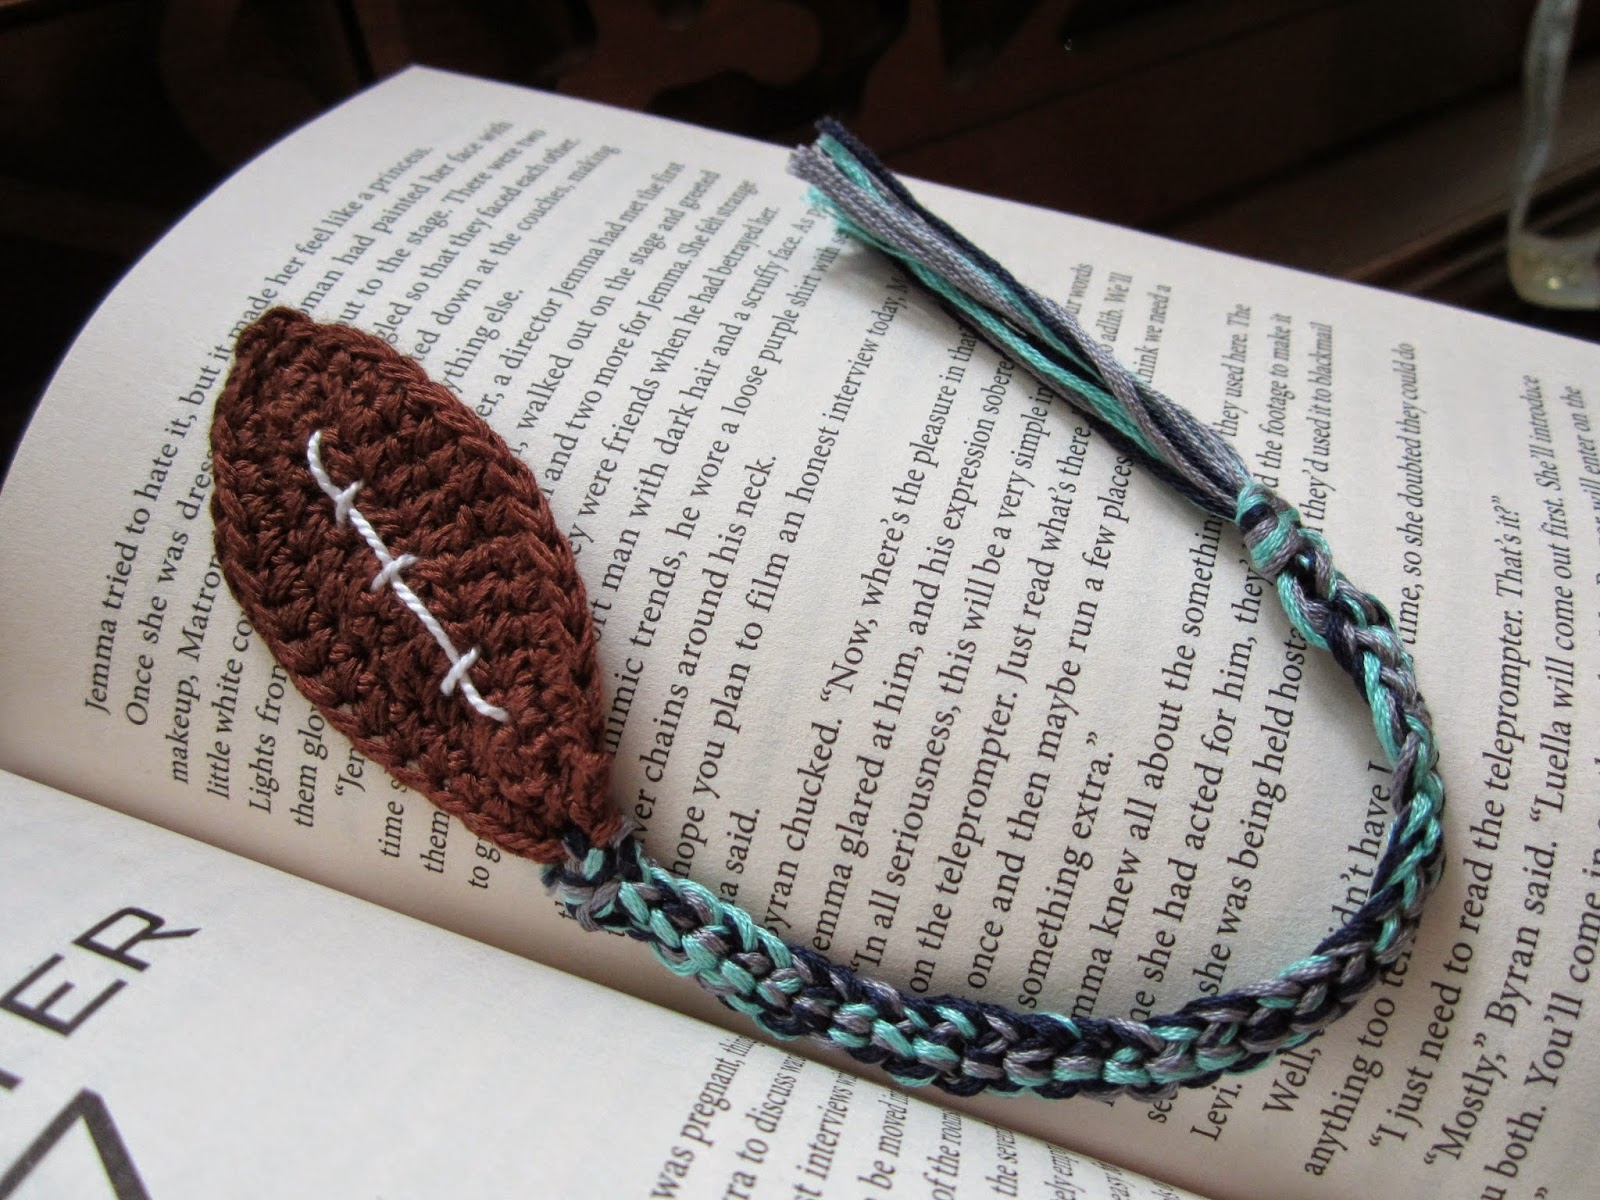 https://www.etsy.com/listing/175627423/crocheted-football-bookmark?ref=shop_home_active_15